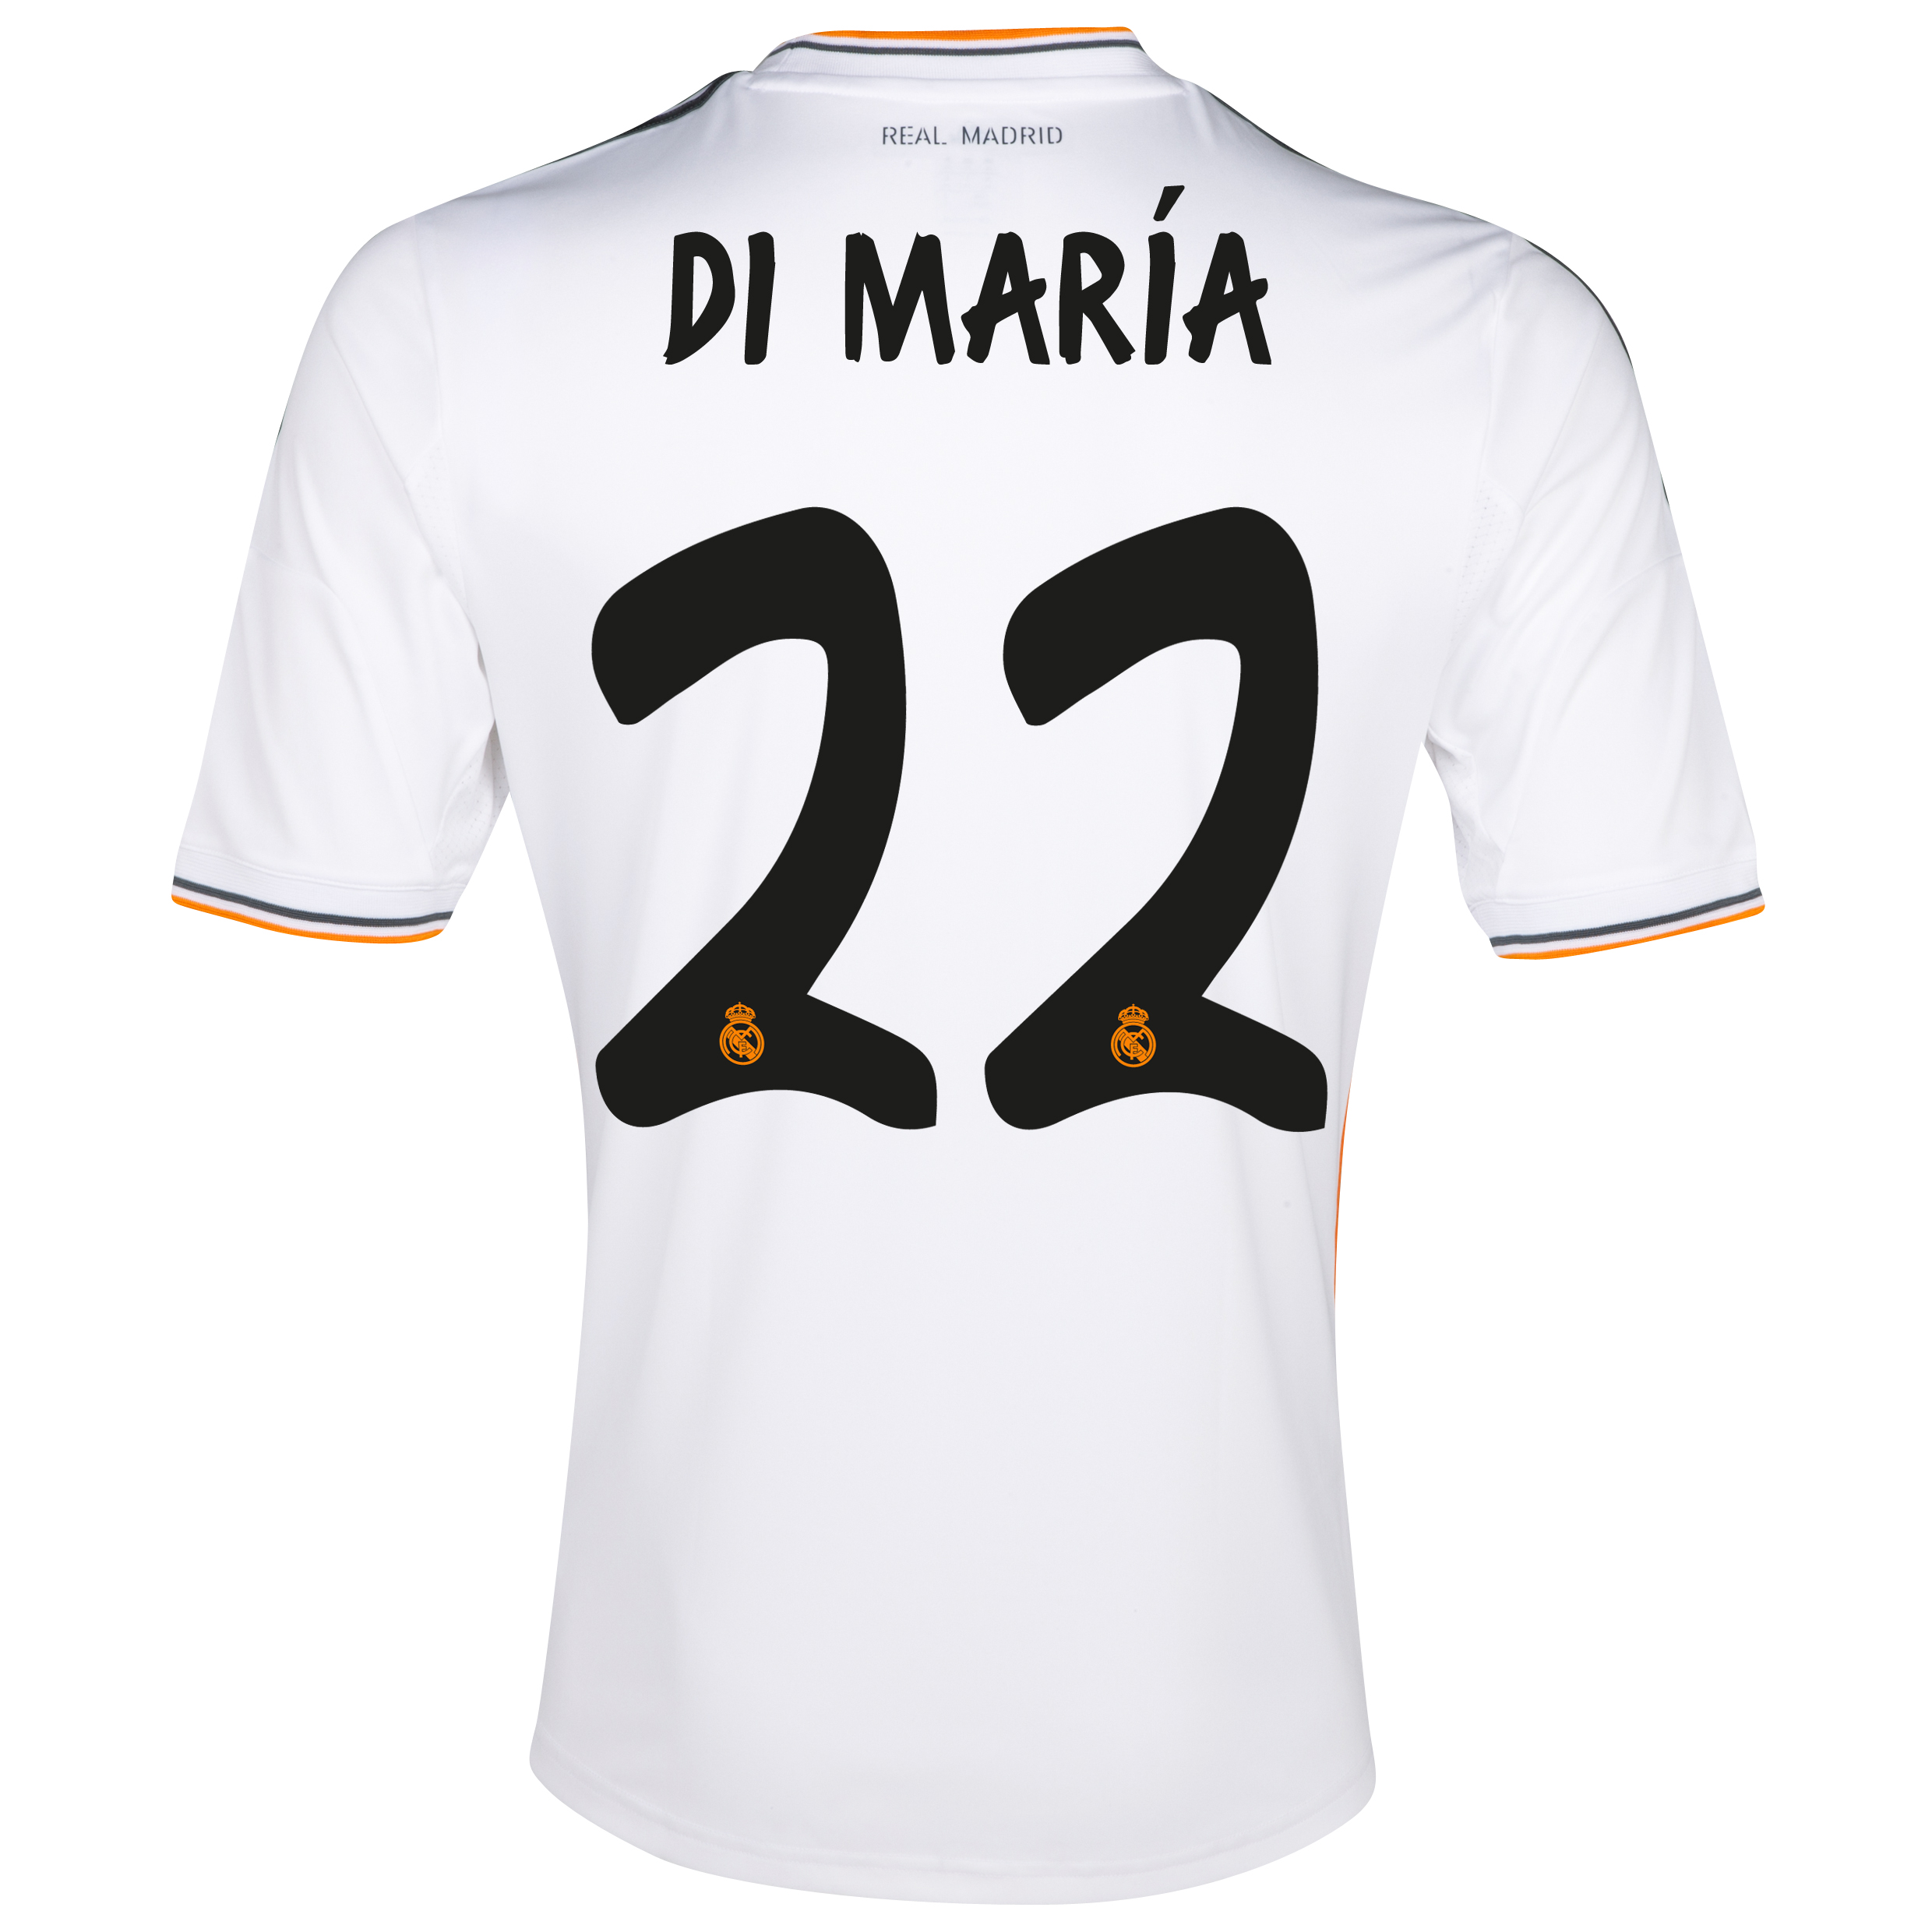 Real Madrid Home Shirt 2013/14 - Kids with Di María 22 printing